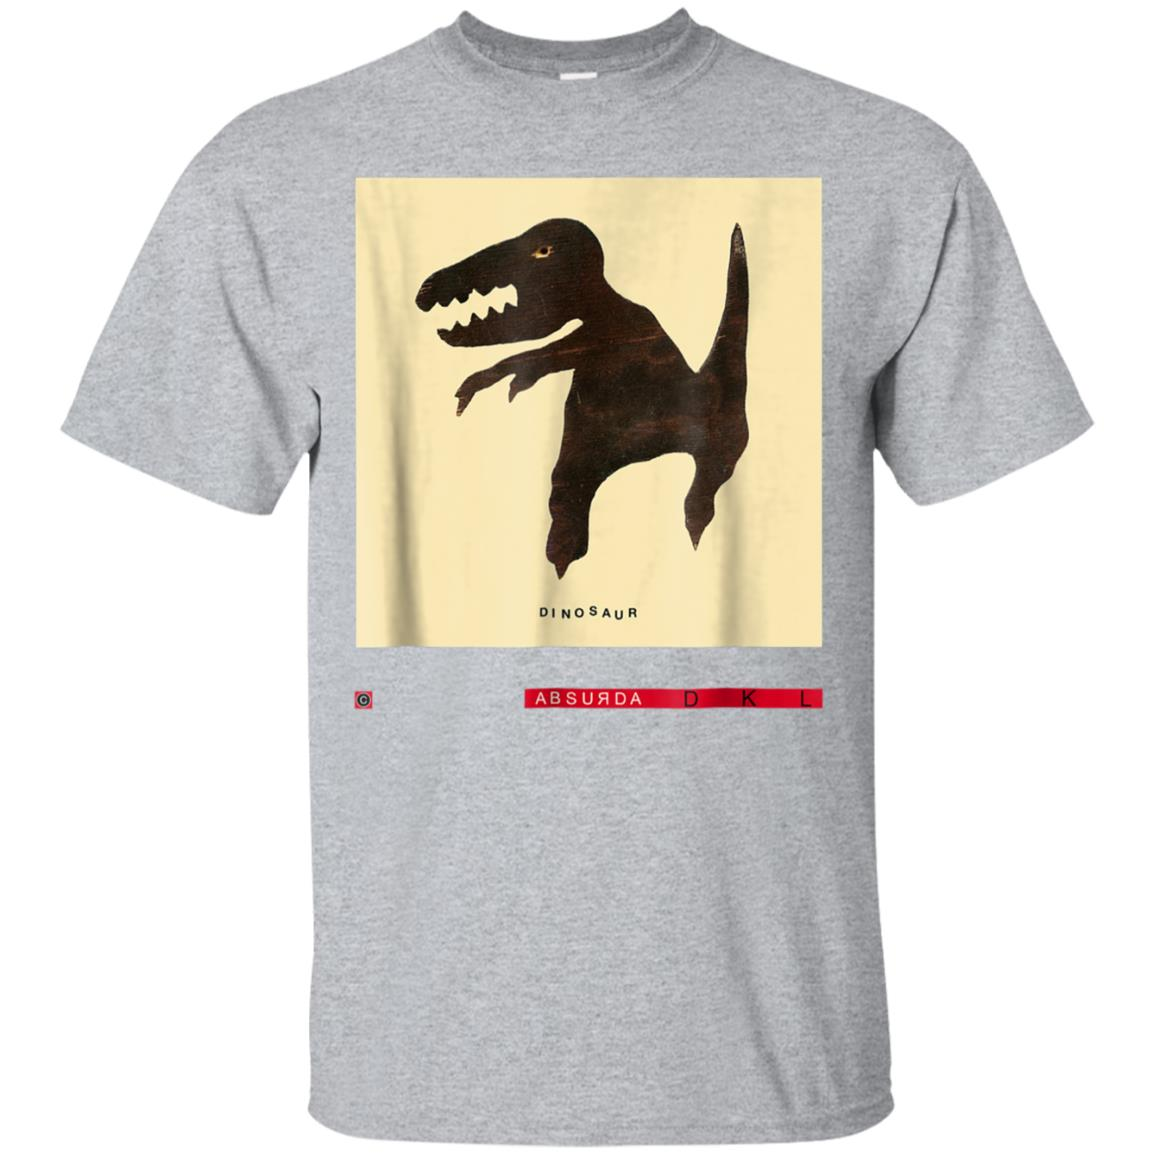 STUDIO DAVID LYNCH DINOSAUR BIG T-SHIRT 99promocode